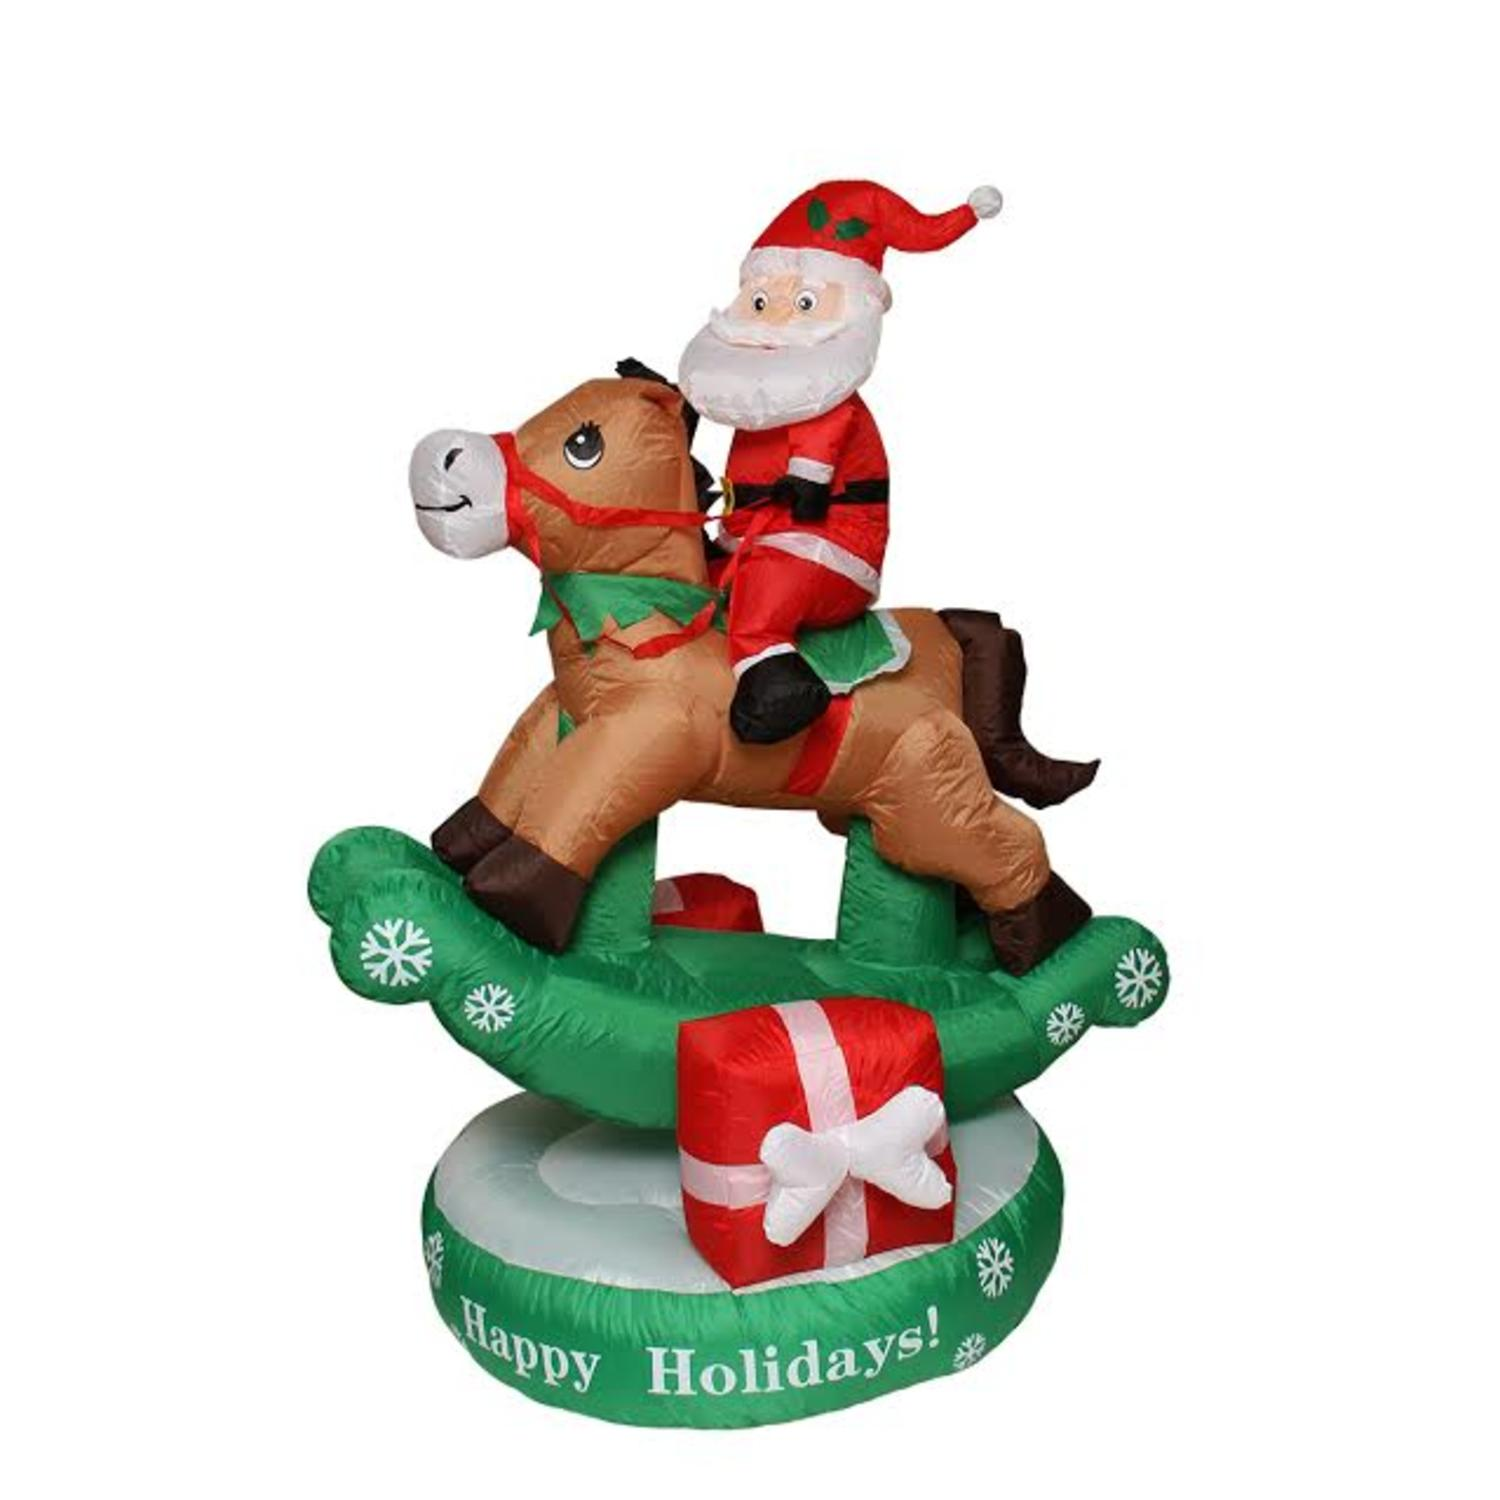 5 inflatable animated santa claus on rocking horse lighted christmas outdoor decoration walmartcom - Christmas Horse Yard Decorations